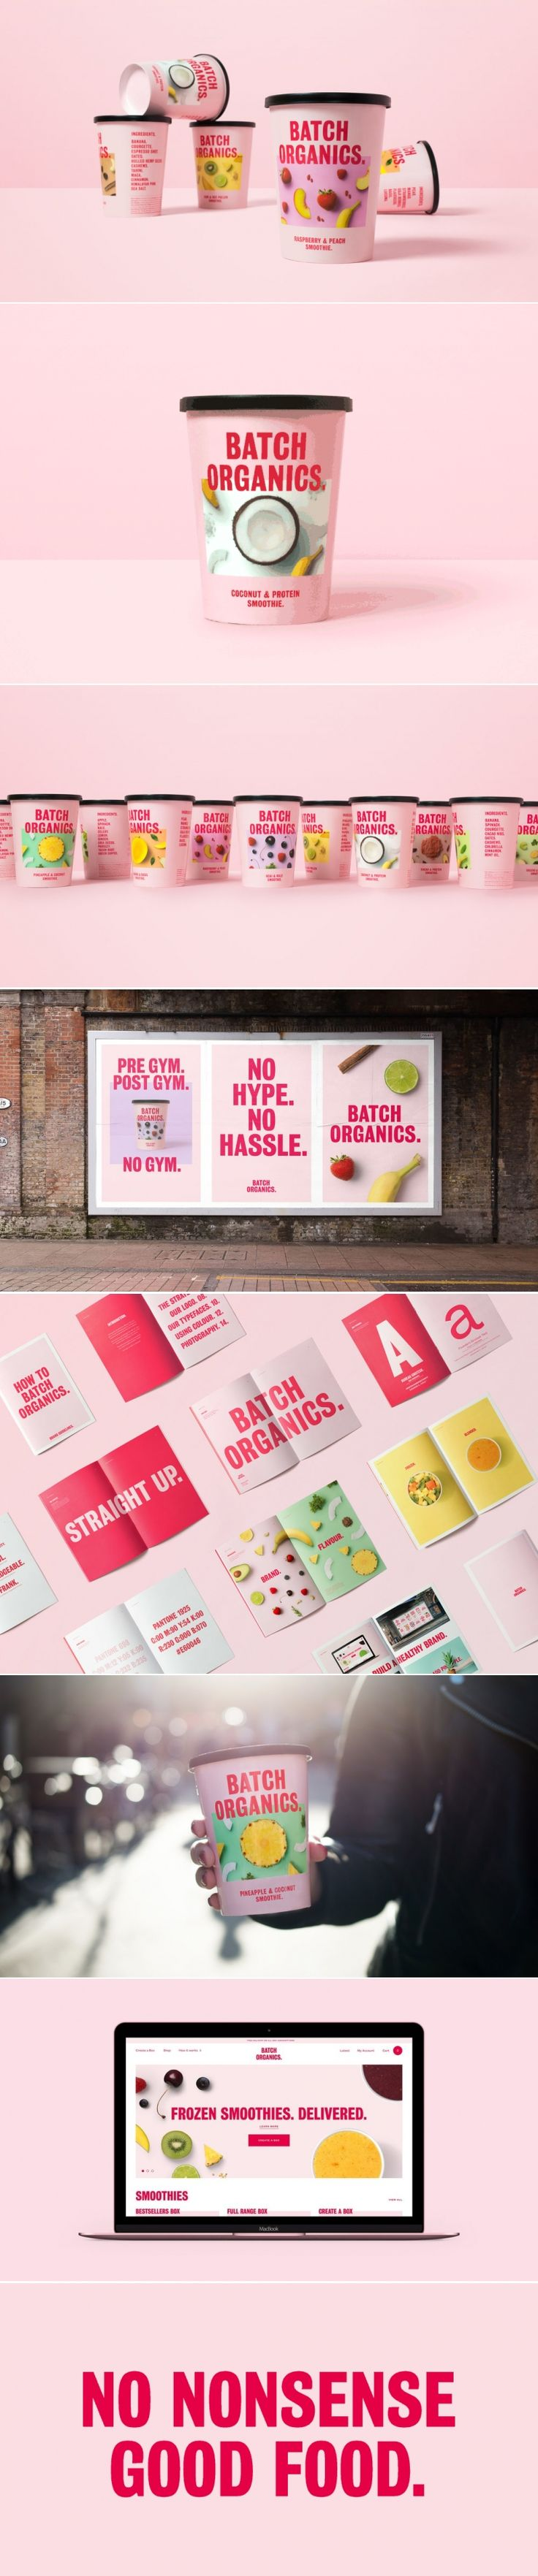 Batch Organics Aims To Bring Healthy Options Without The Hype — The Dieline | Packaging & Branding Design & Innovation News